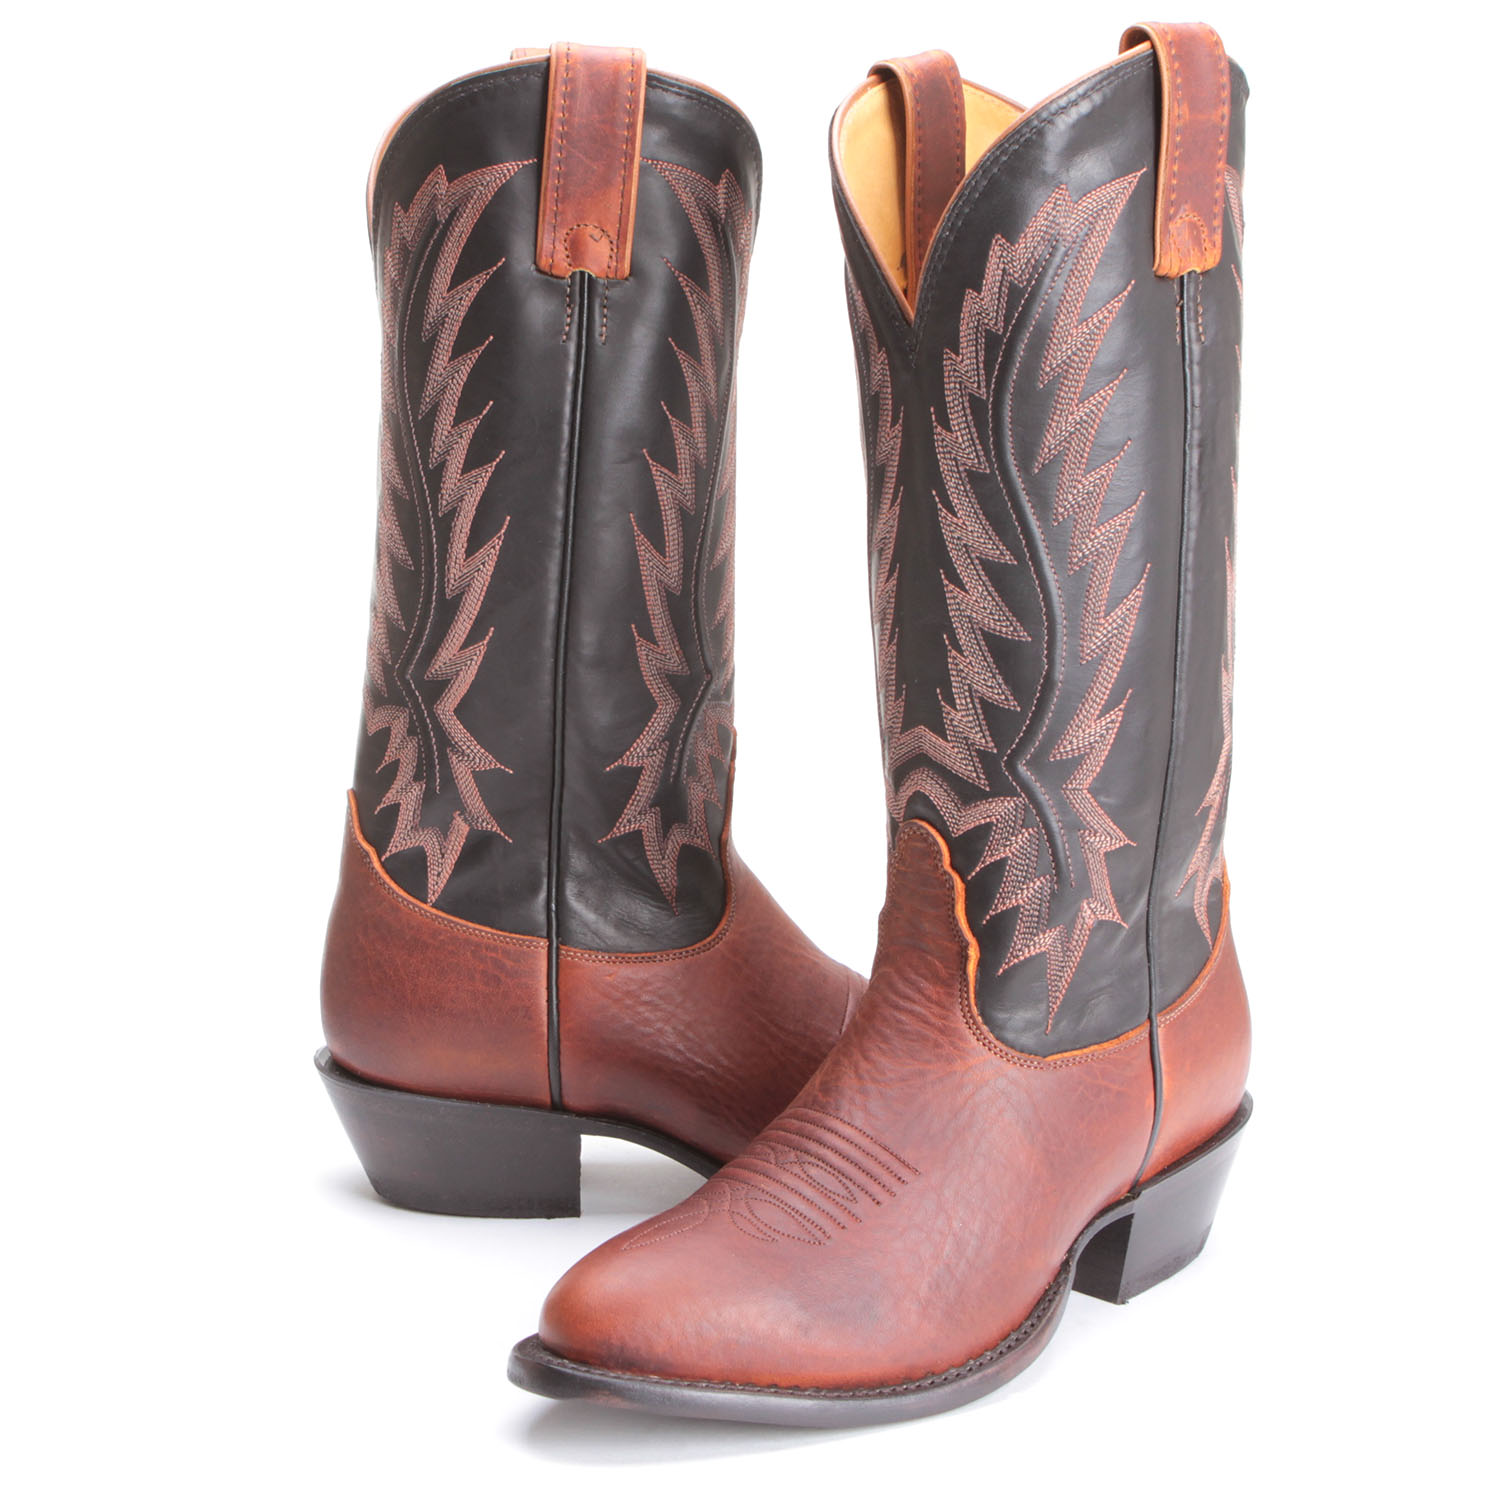 nocona boots pfi bootdaddy collection with nocona mens ranch calf round toe cowboy boots  brown KMOHVKL